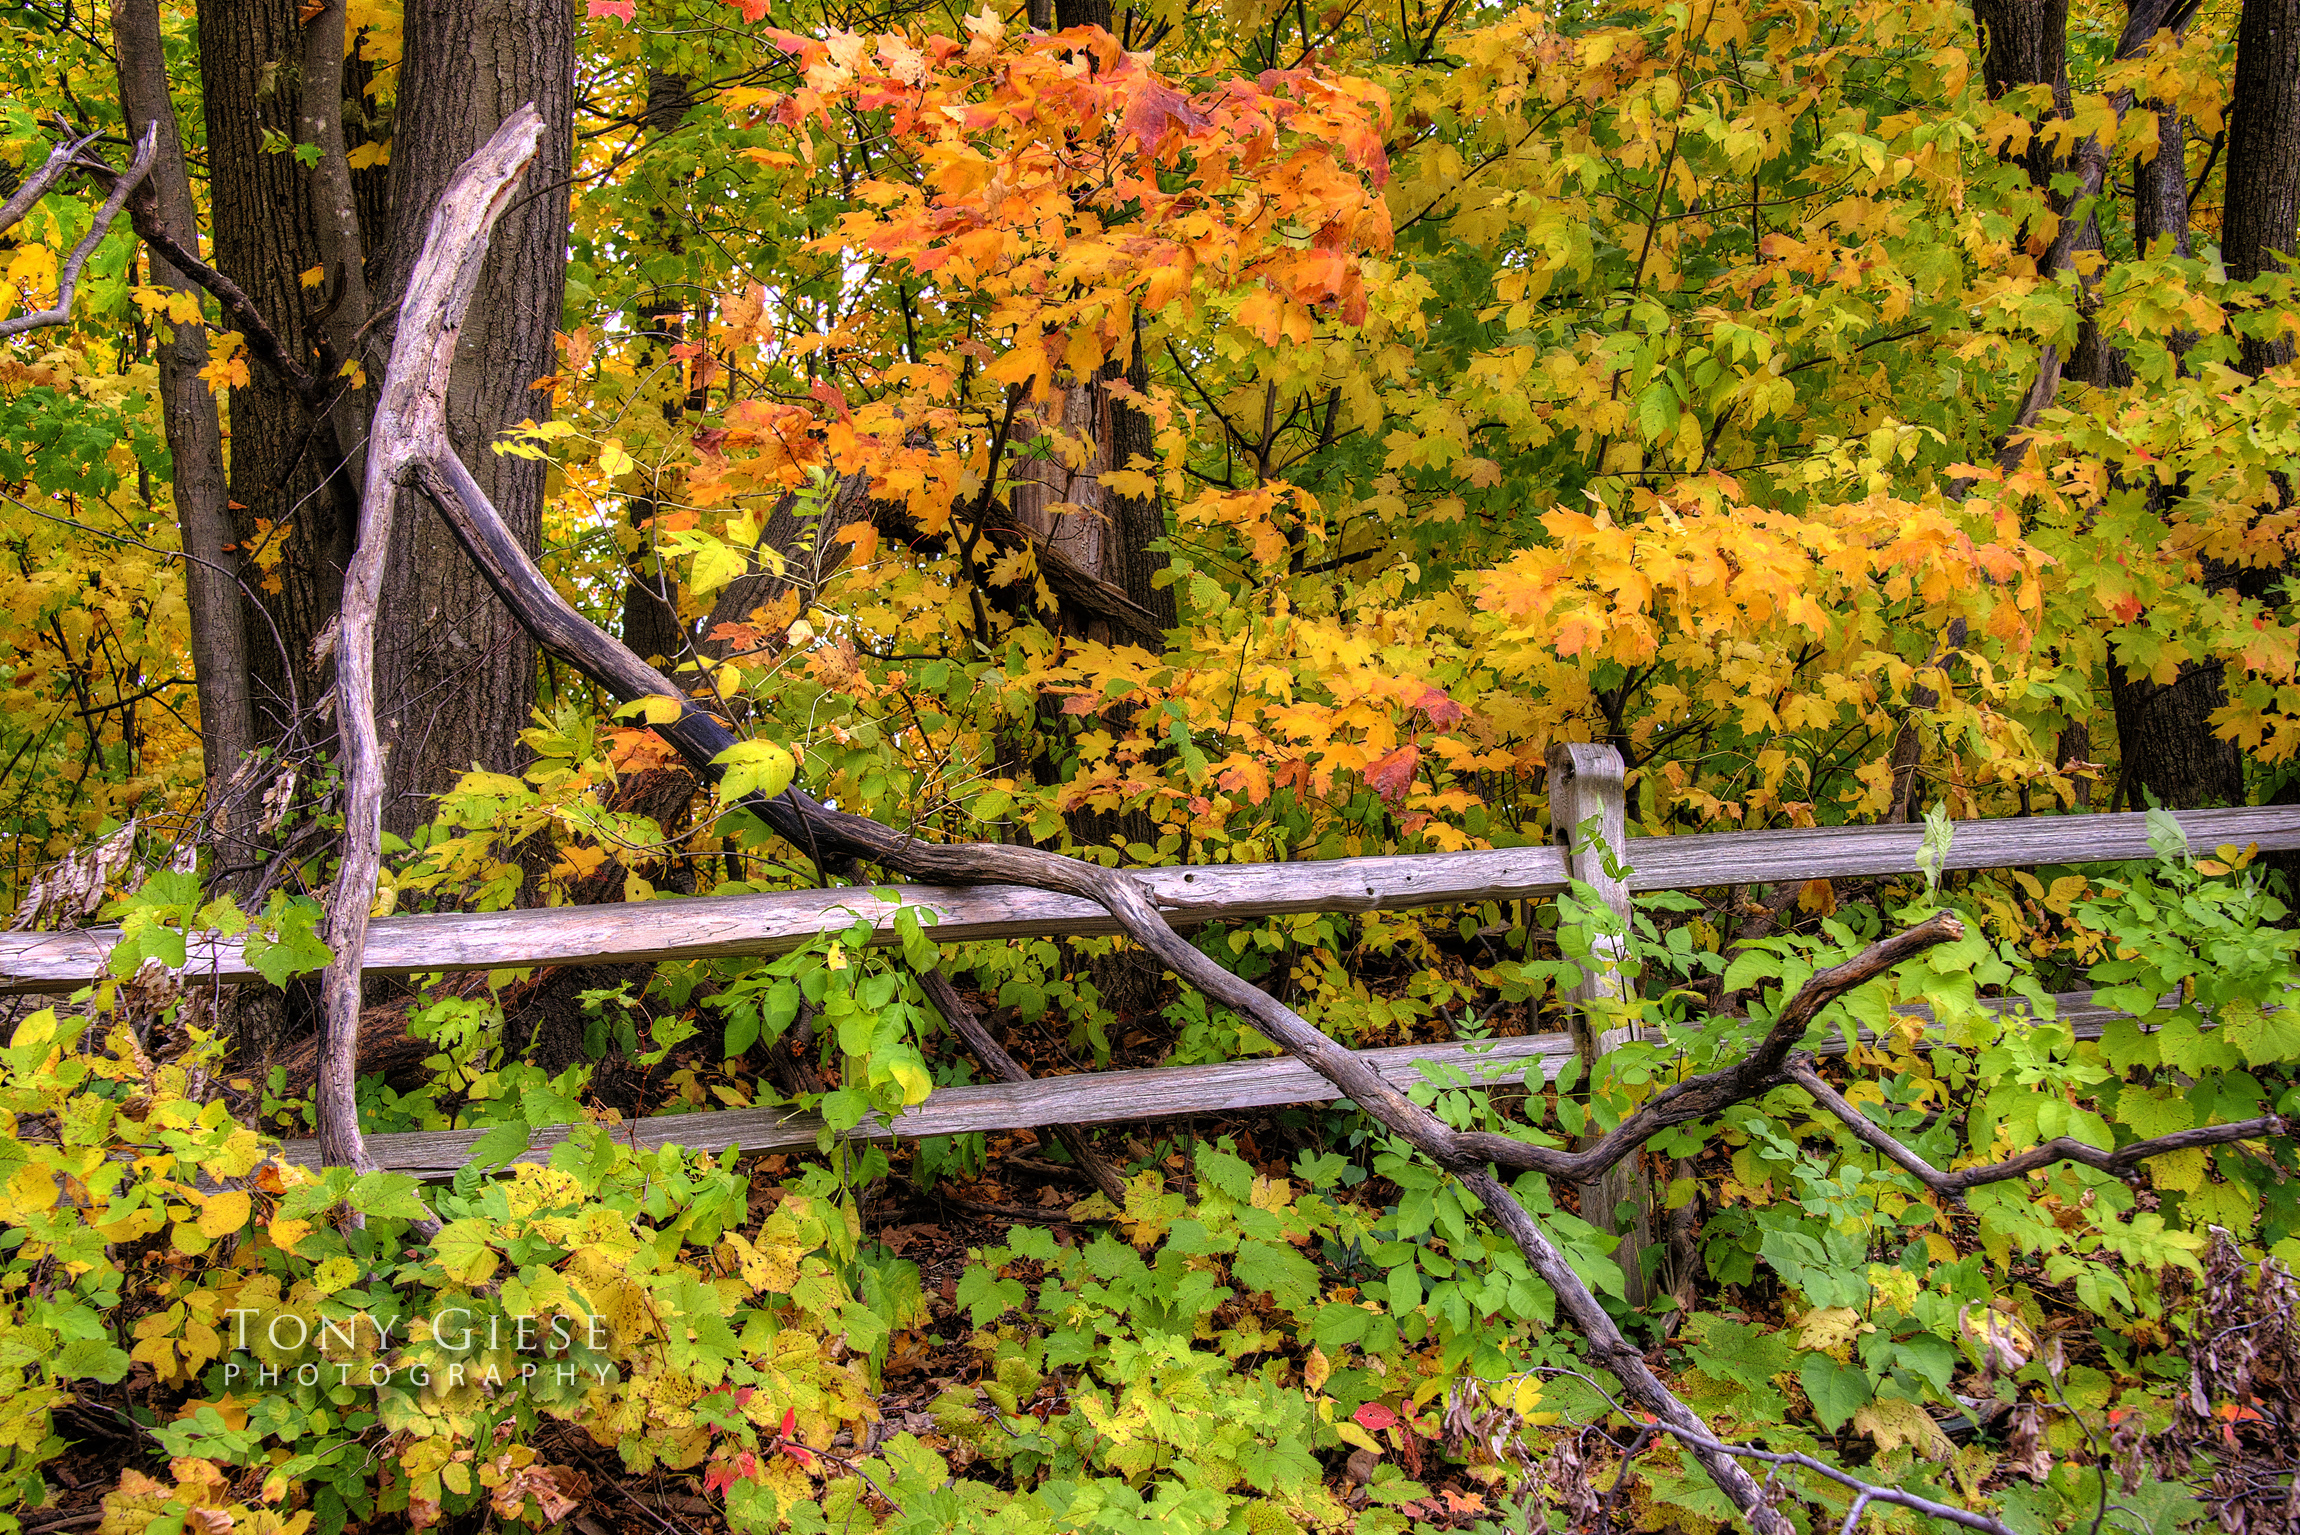 Wooden fence with fallen tree branch against colorful fall leaves.